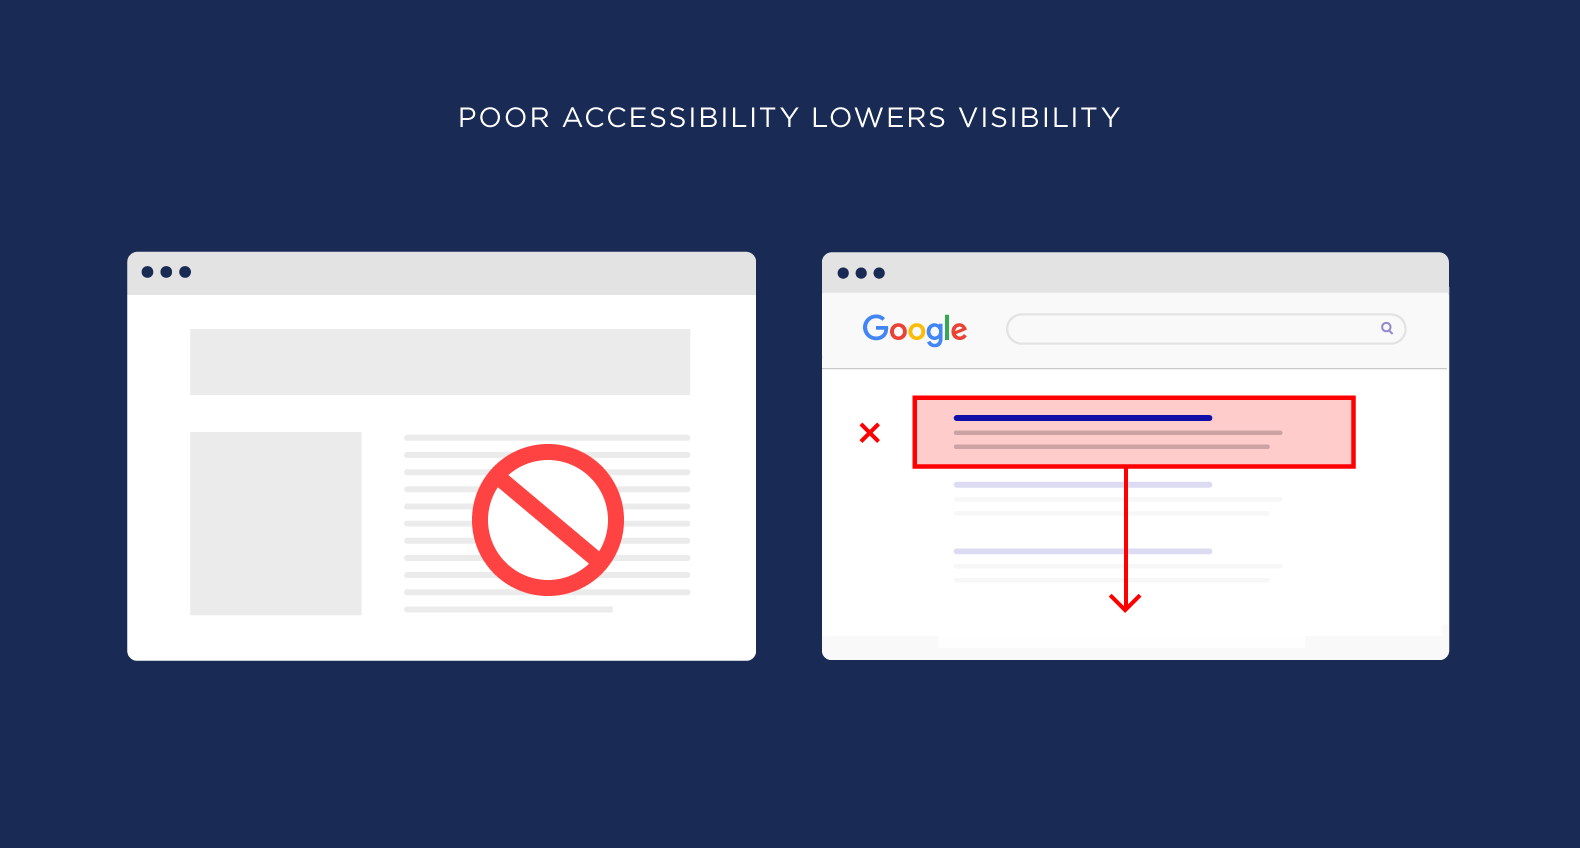 Poor accessibility lowers visibility